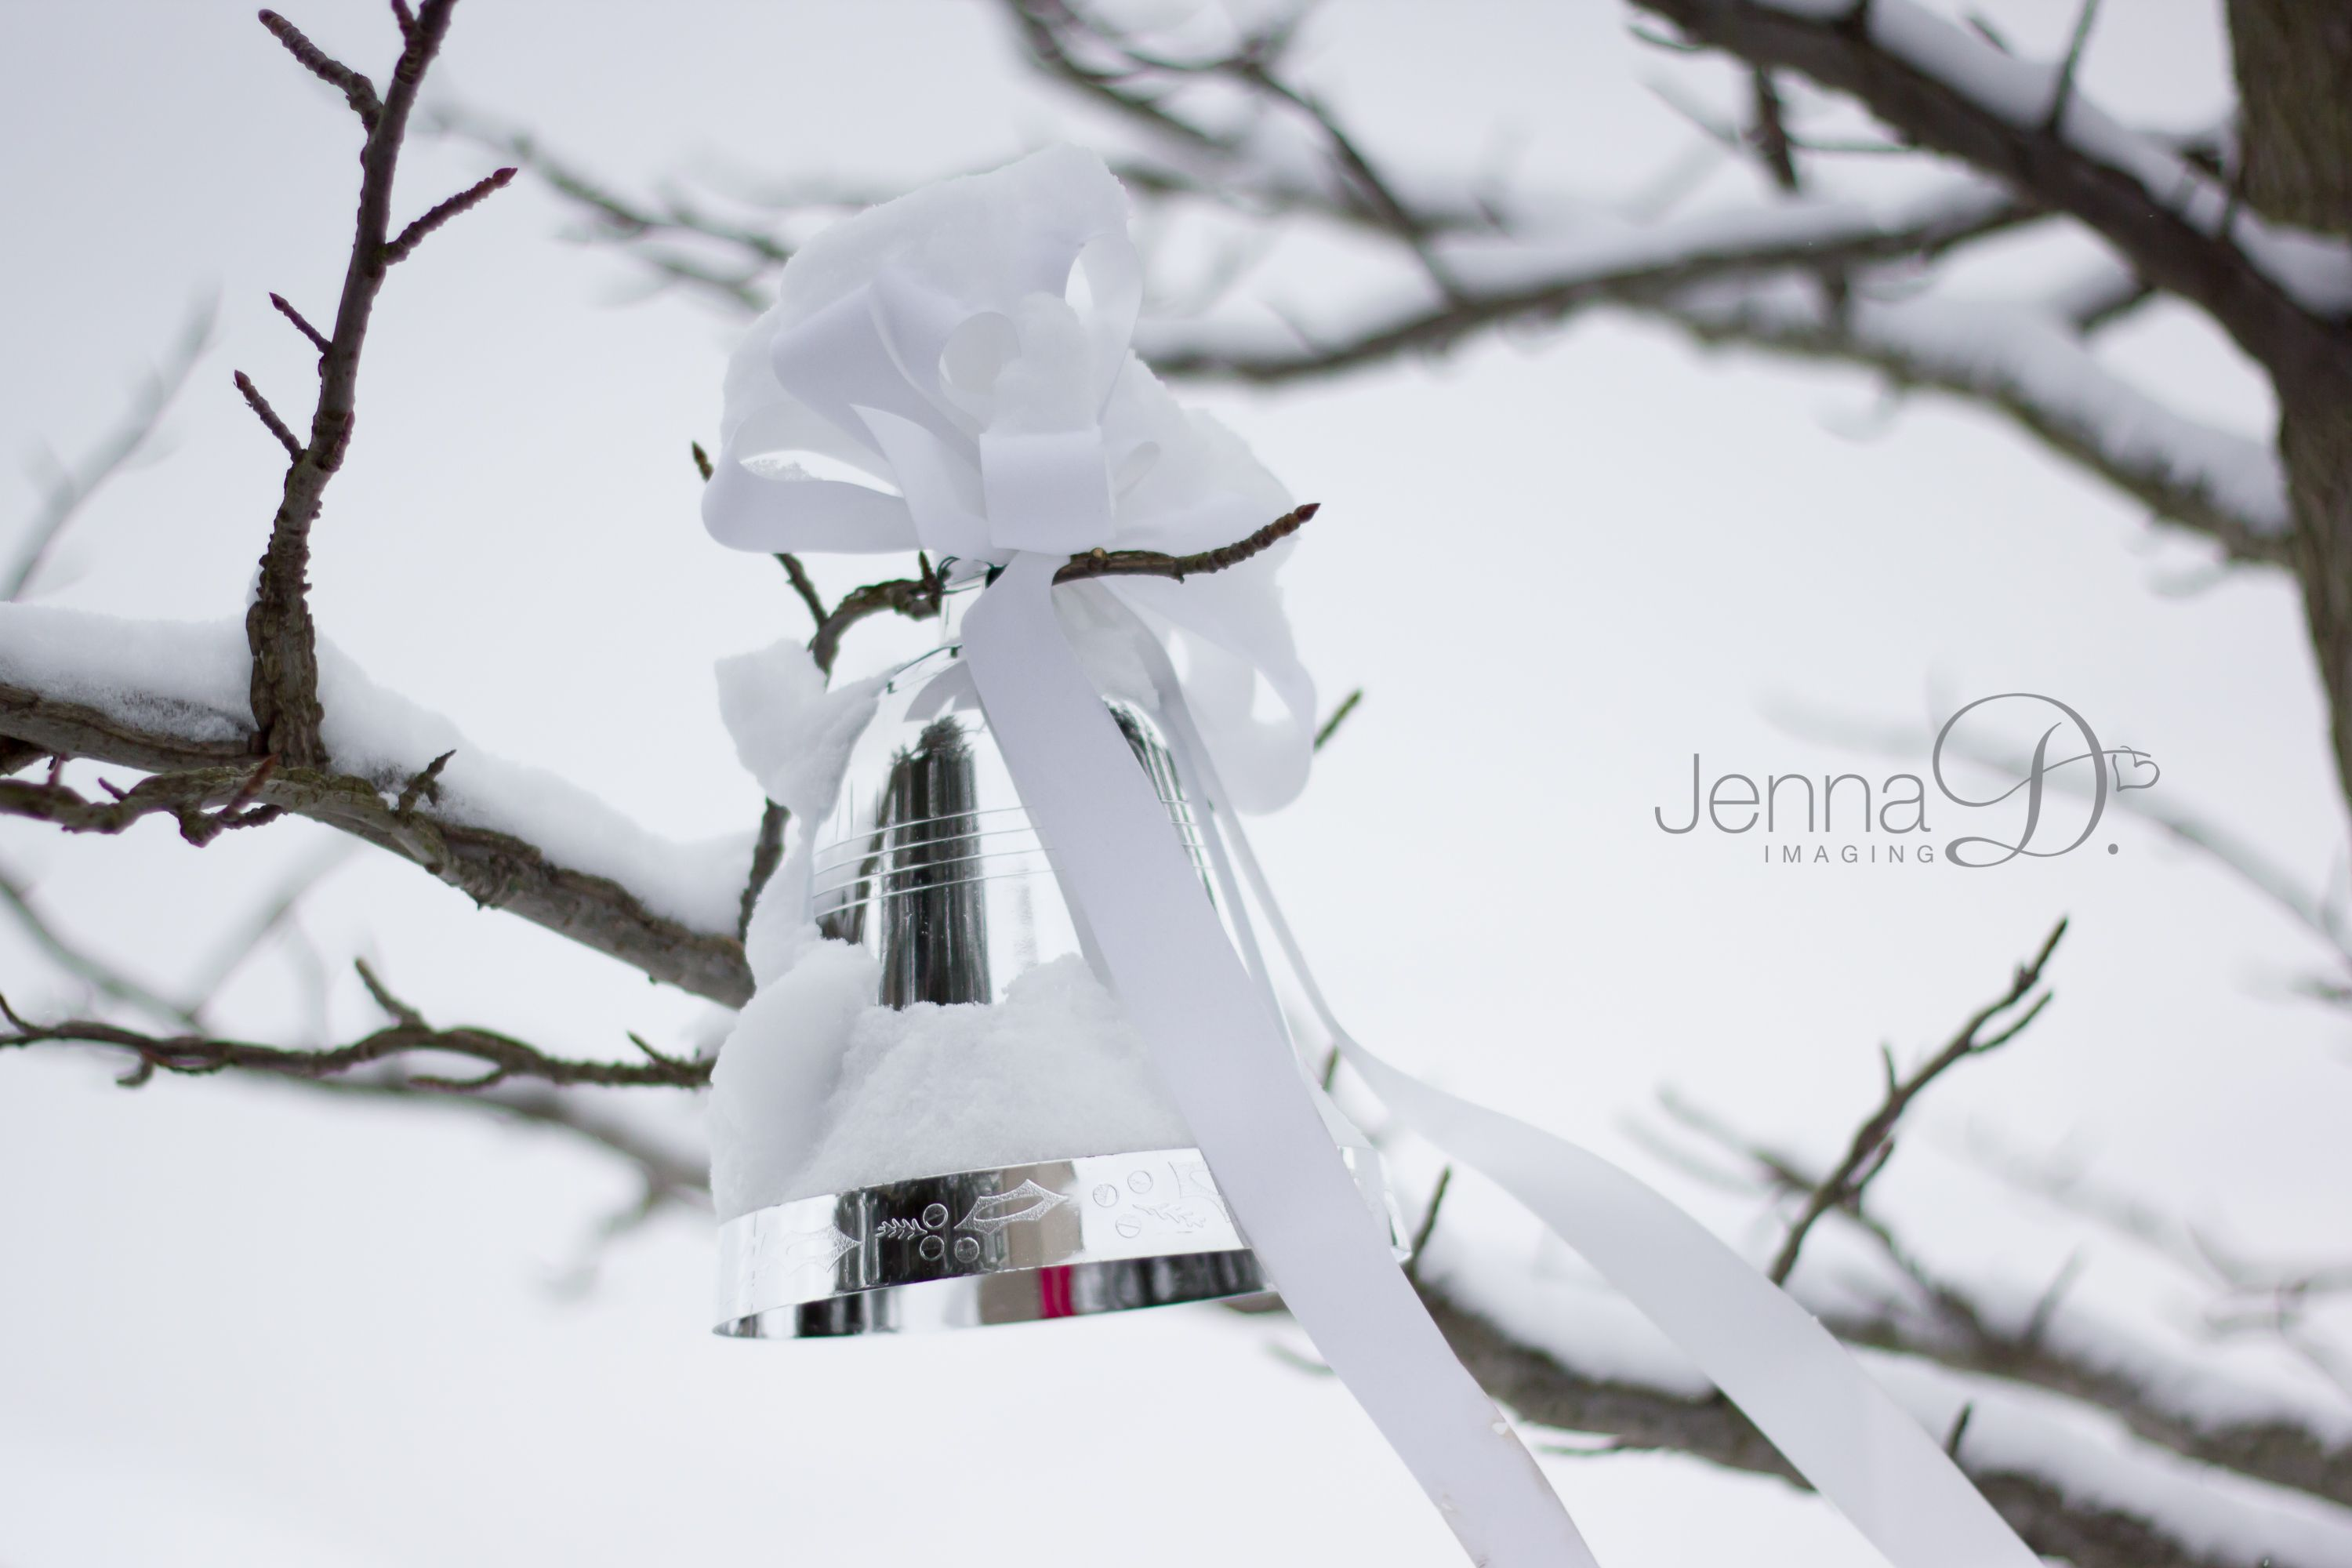 Wedding Bells Decorations Wedding Bells Snow Bells Christmas Decorations  Jenna D